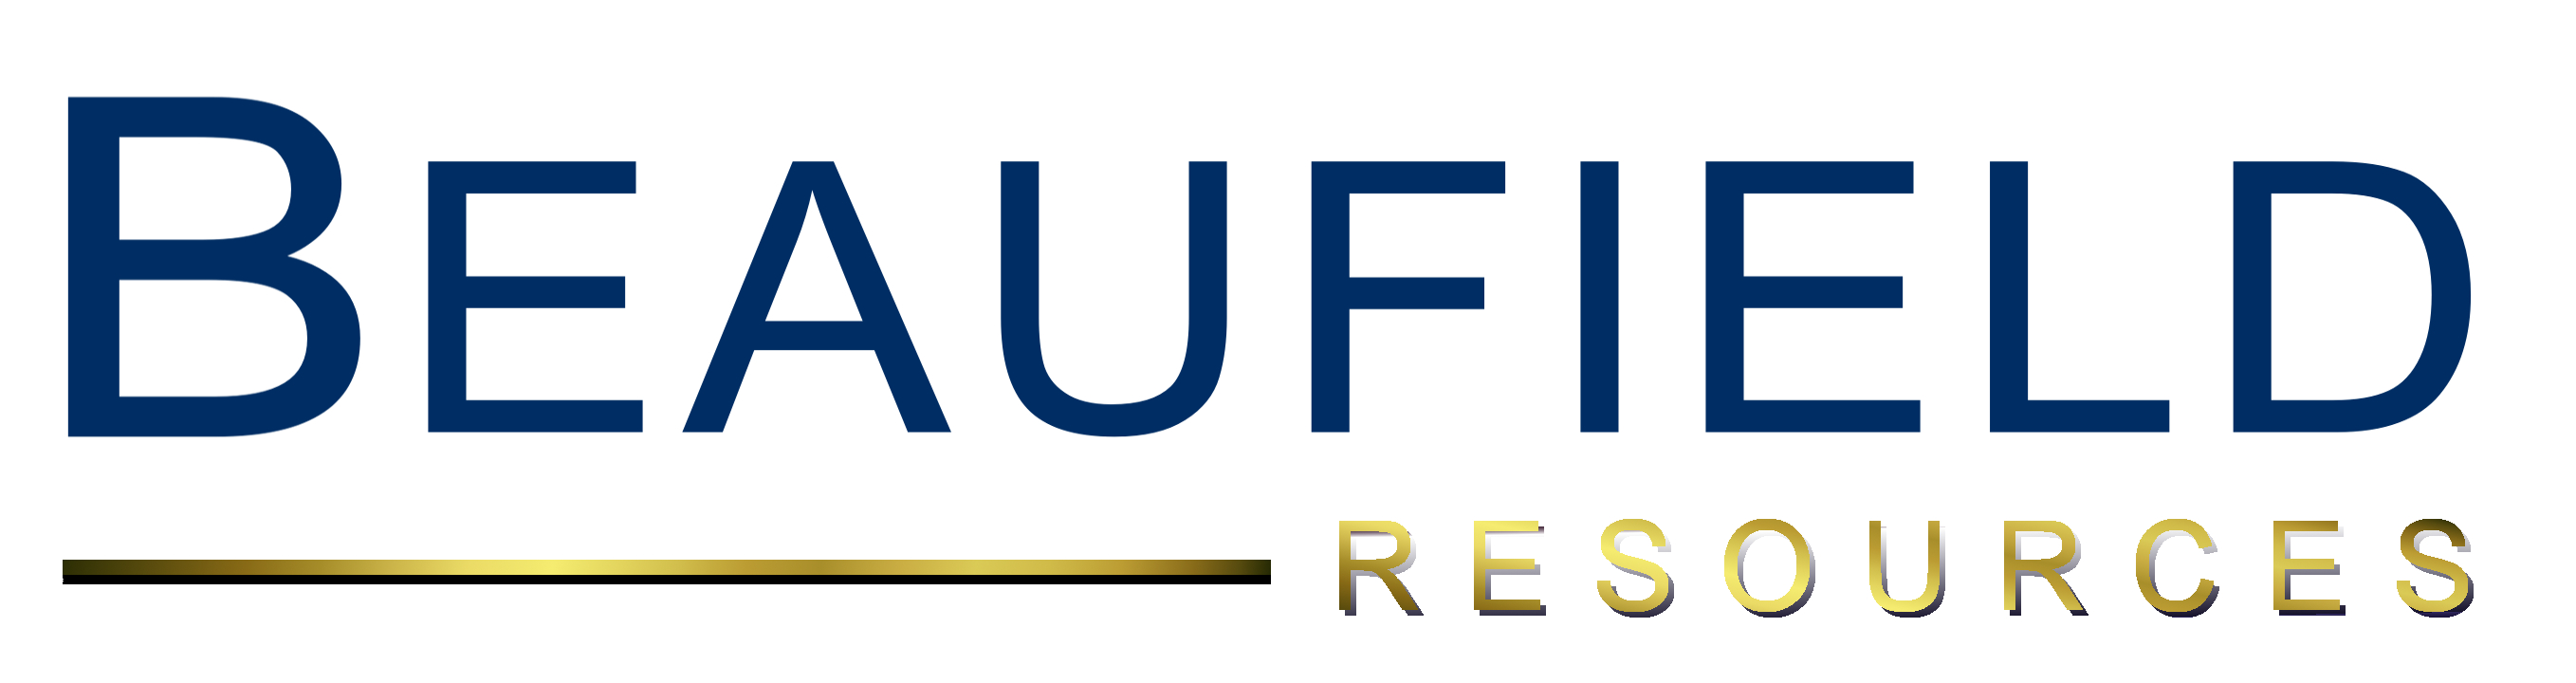 BEAUFIELD_LOGO.jpg